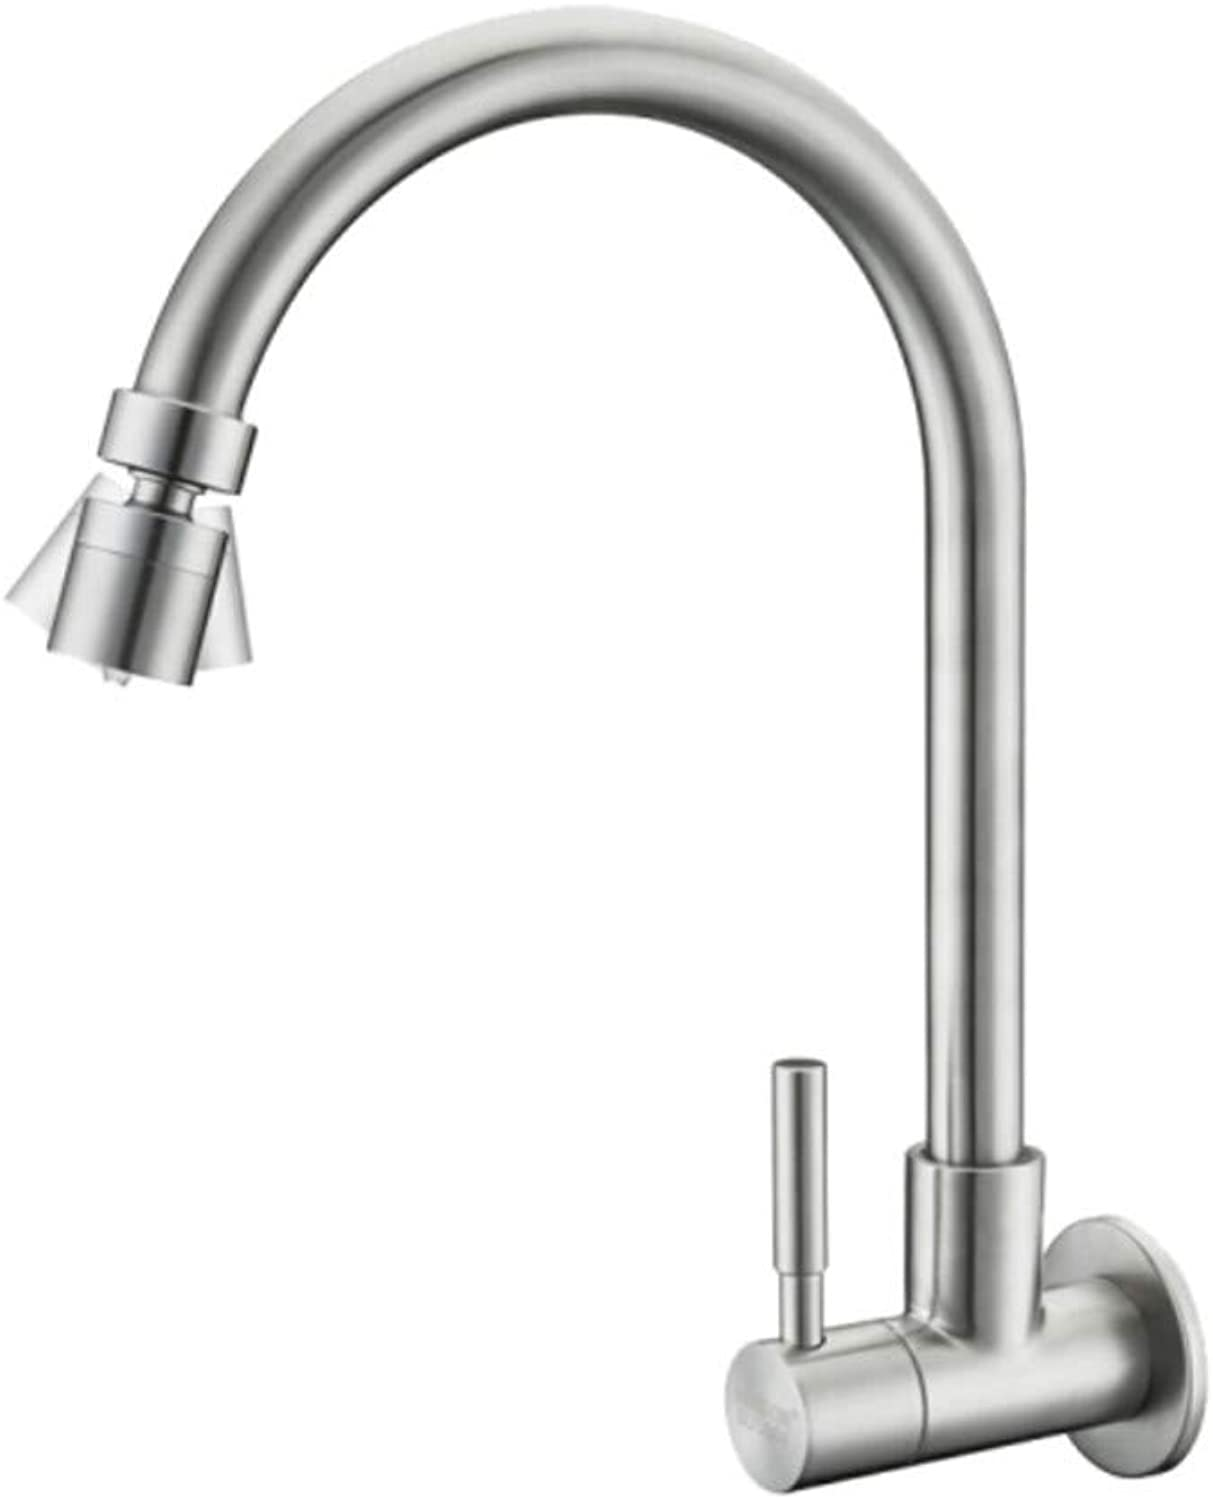 Basin Sink Faucet Bathroom Sink Faucetwall Mounted Single Cold Water Faucet, Universal redary Head, Kitchen Washing Basin, Balcony Laundry Pool Mop Pool